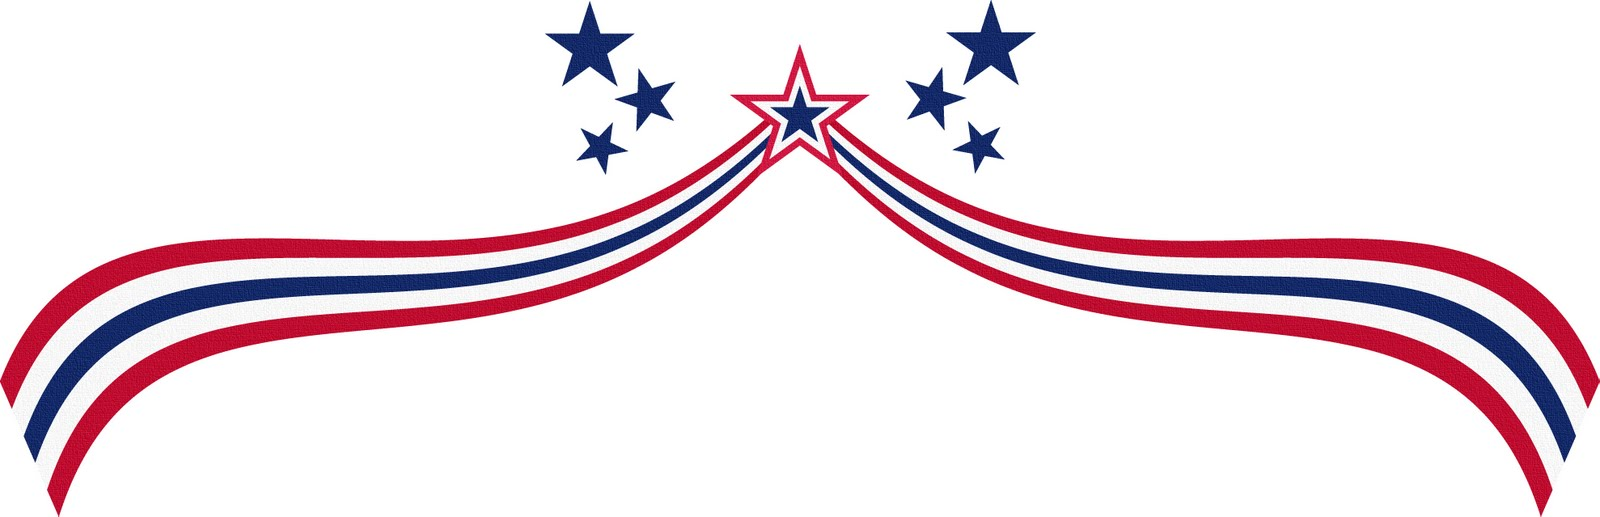 4th Of July Clip Art Borders